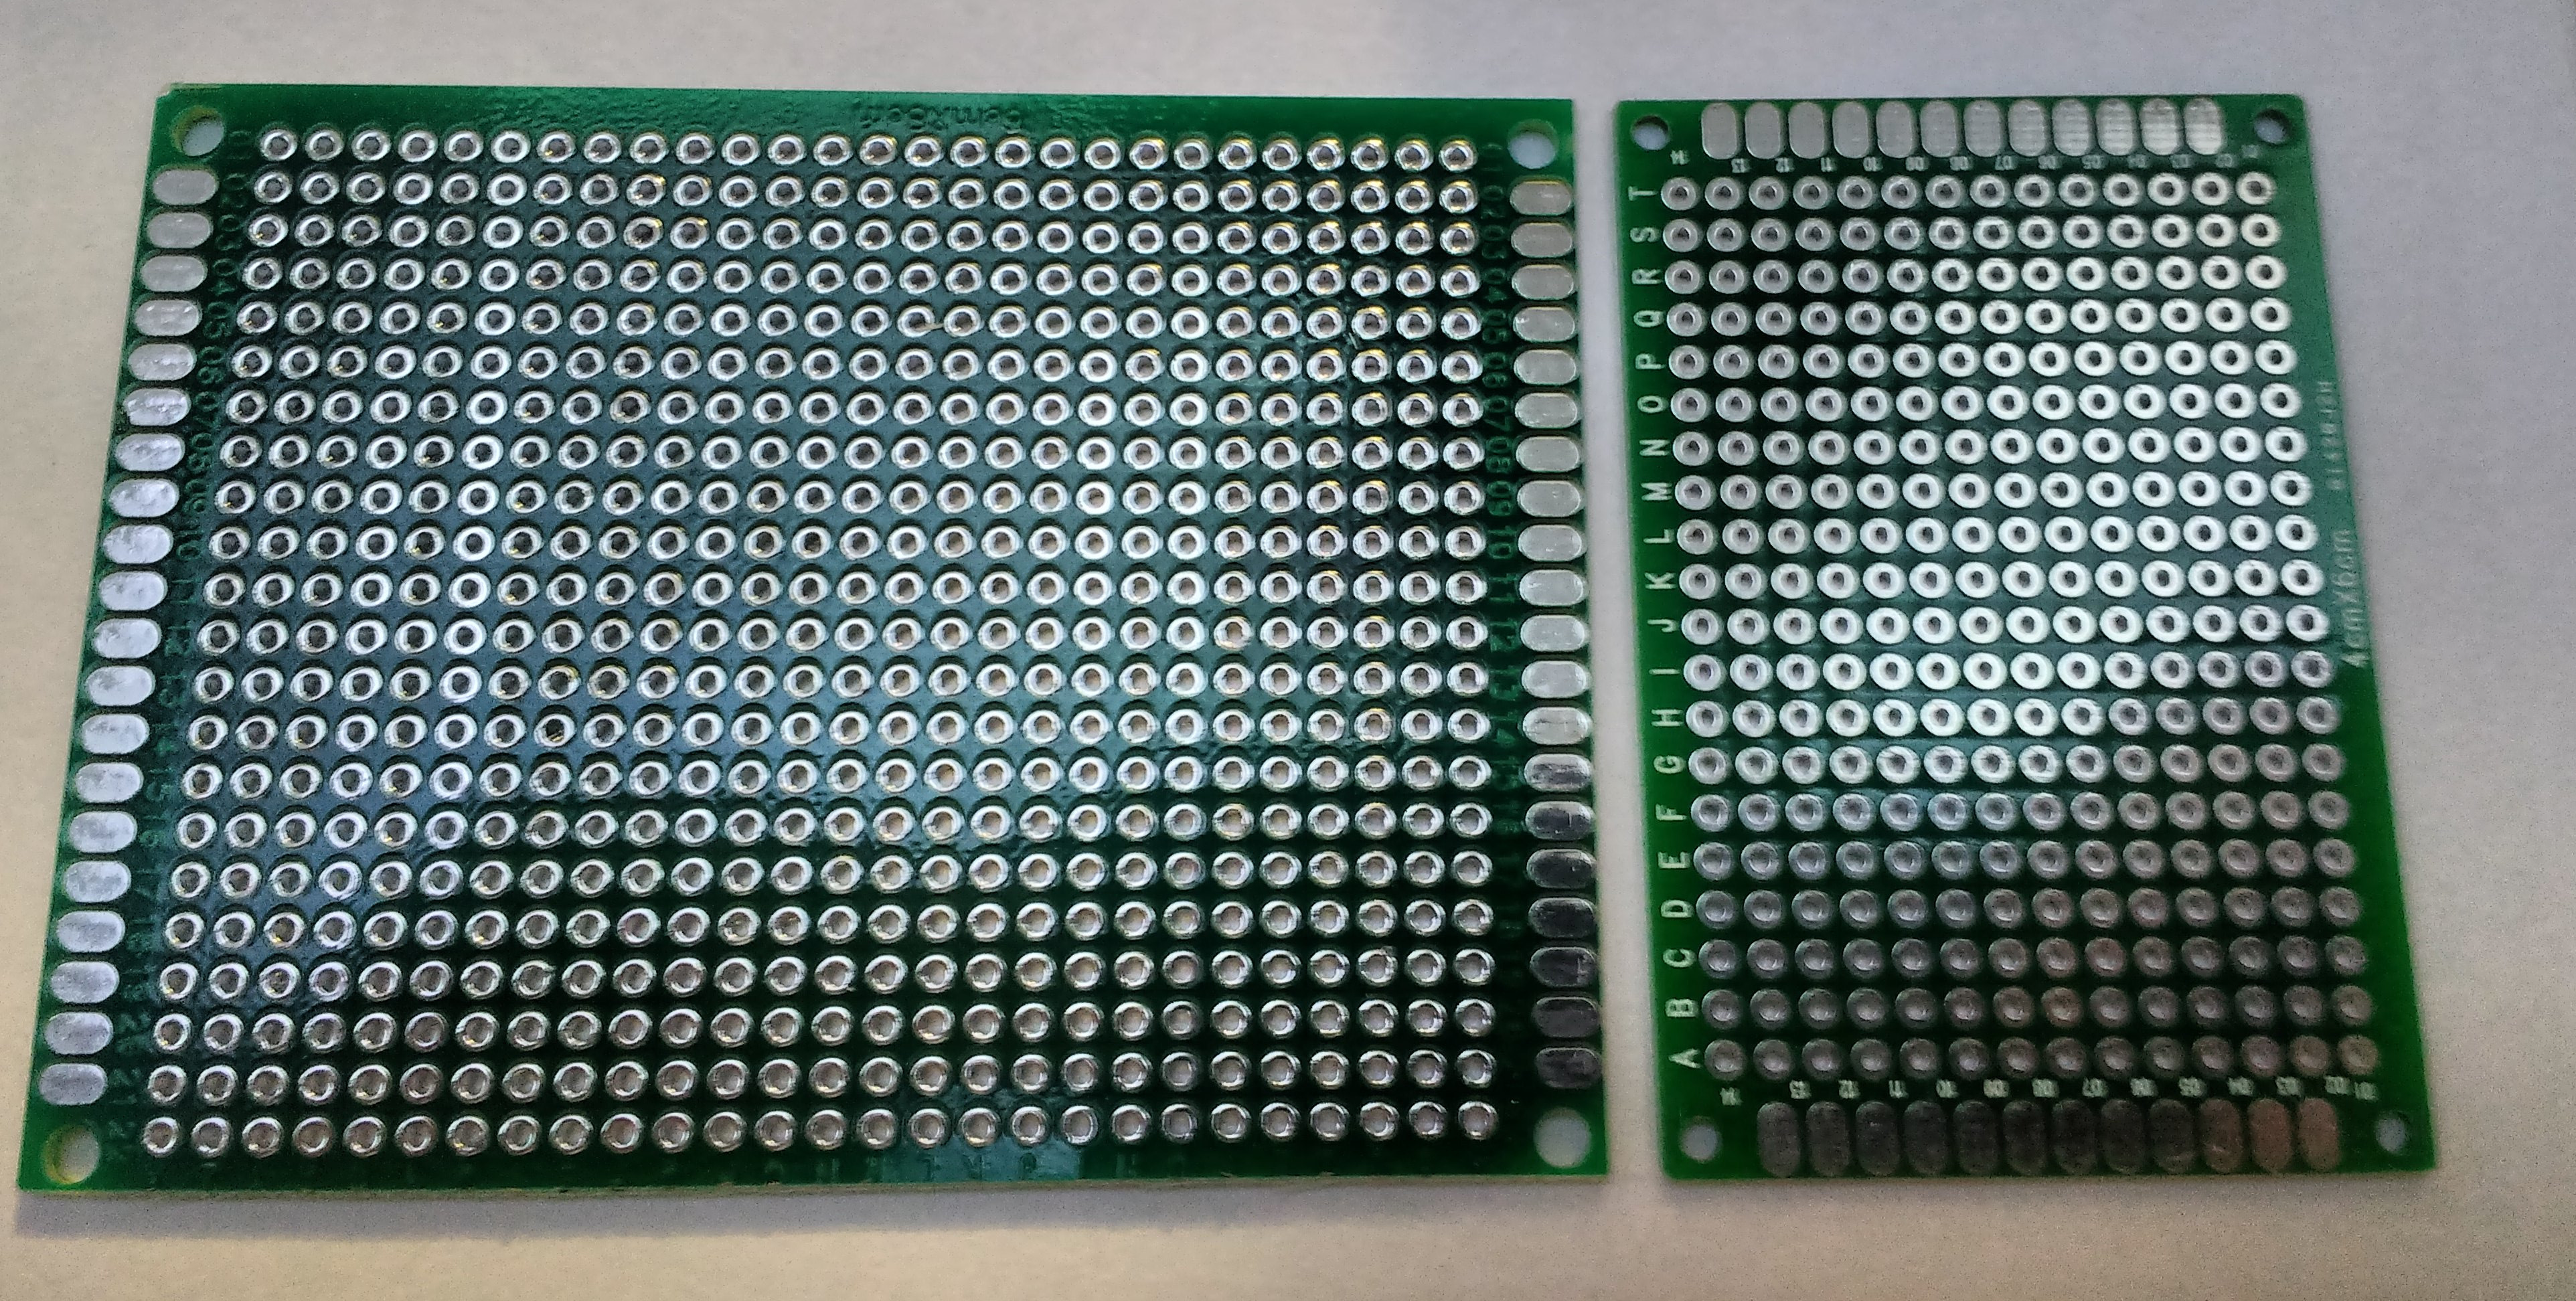 Double-Sided Prototype Board